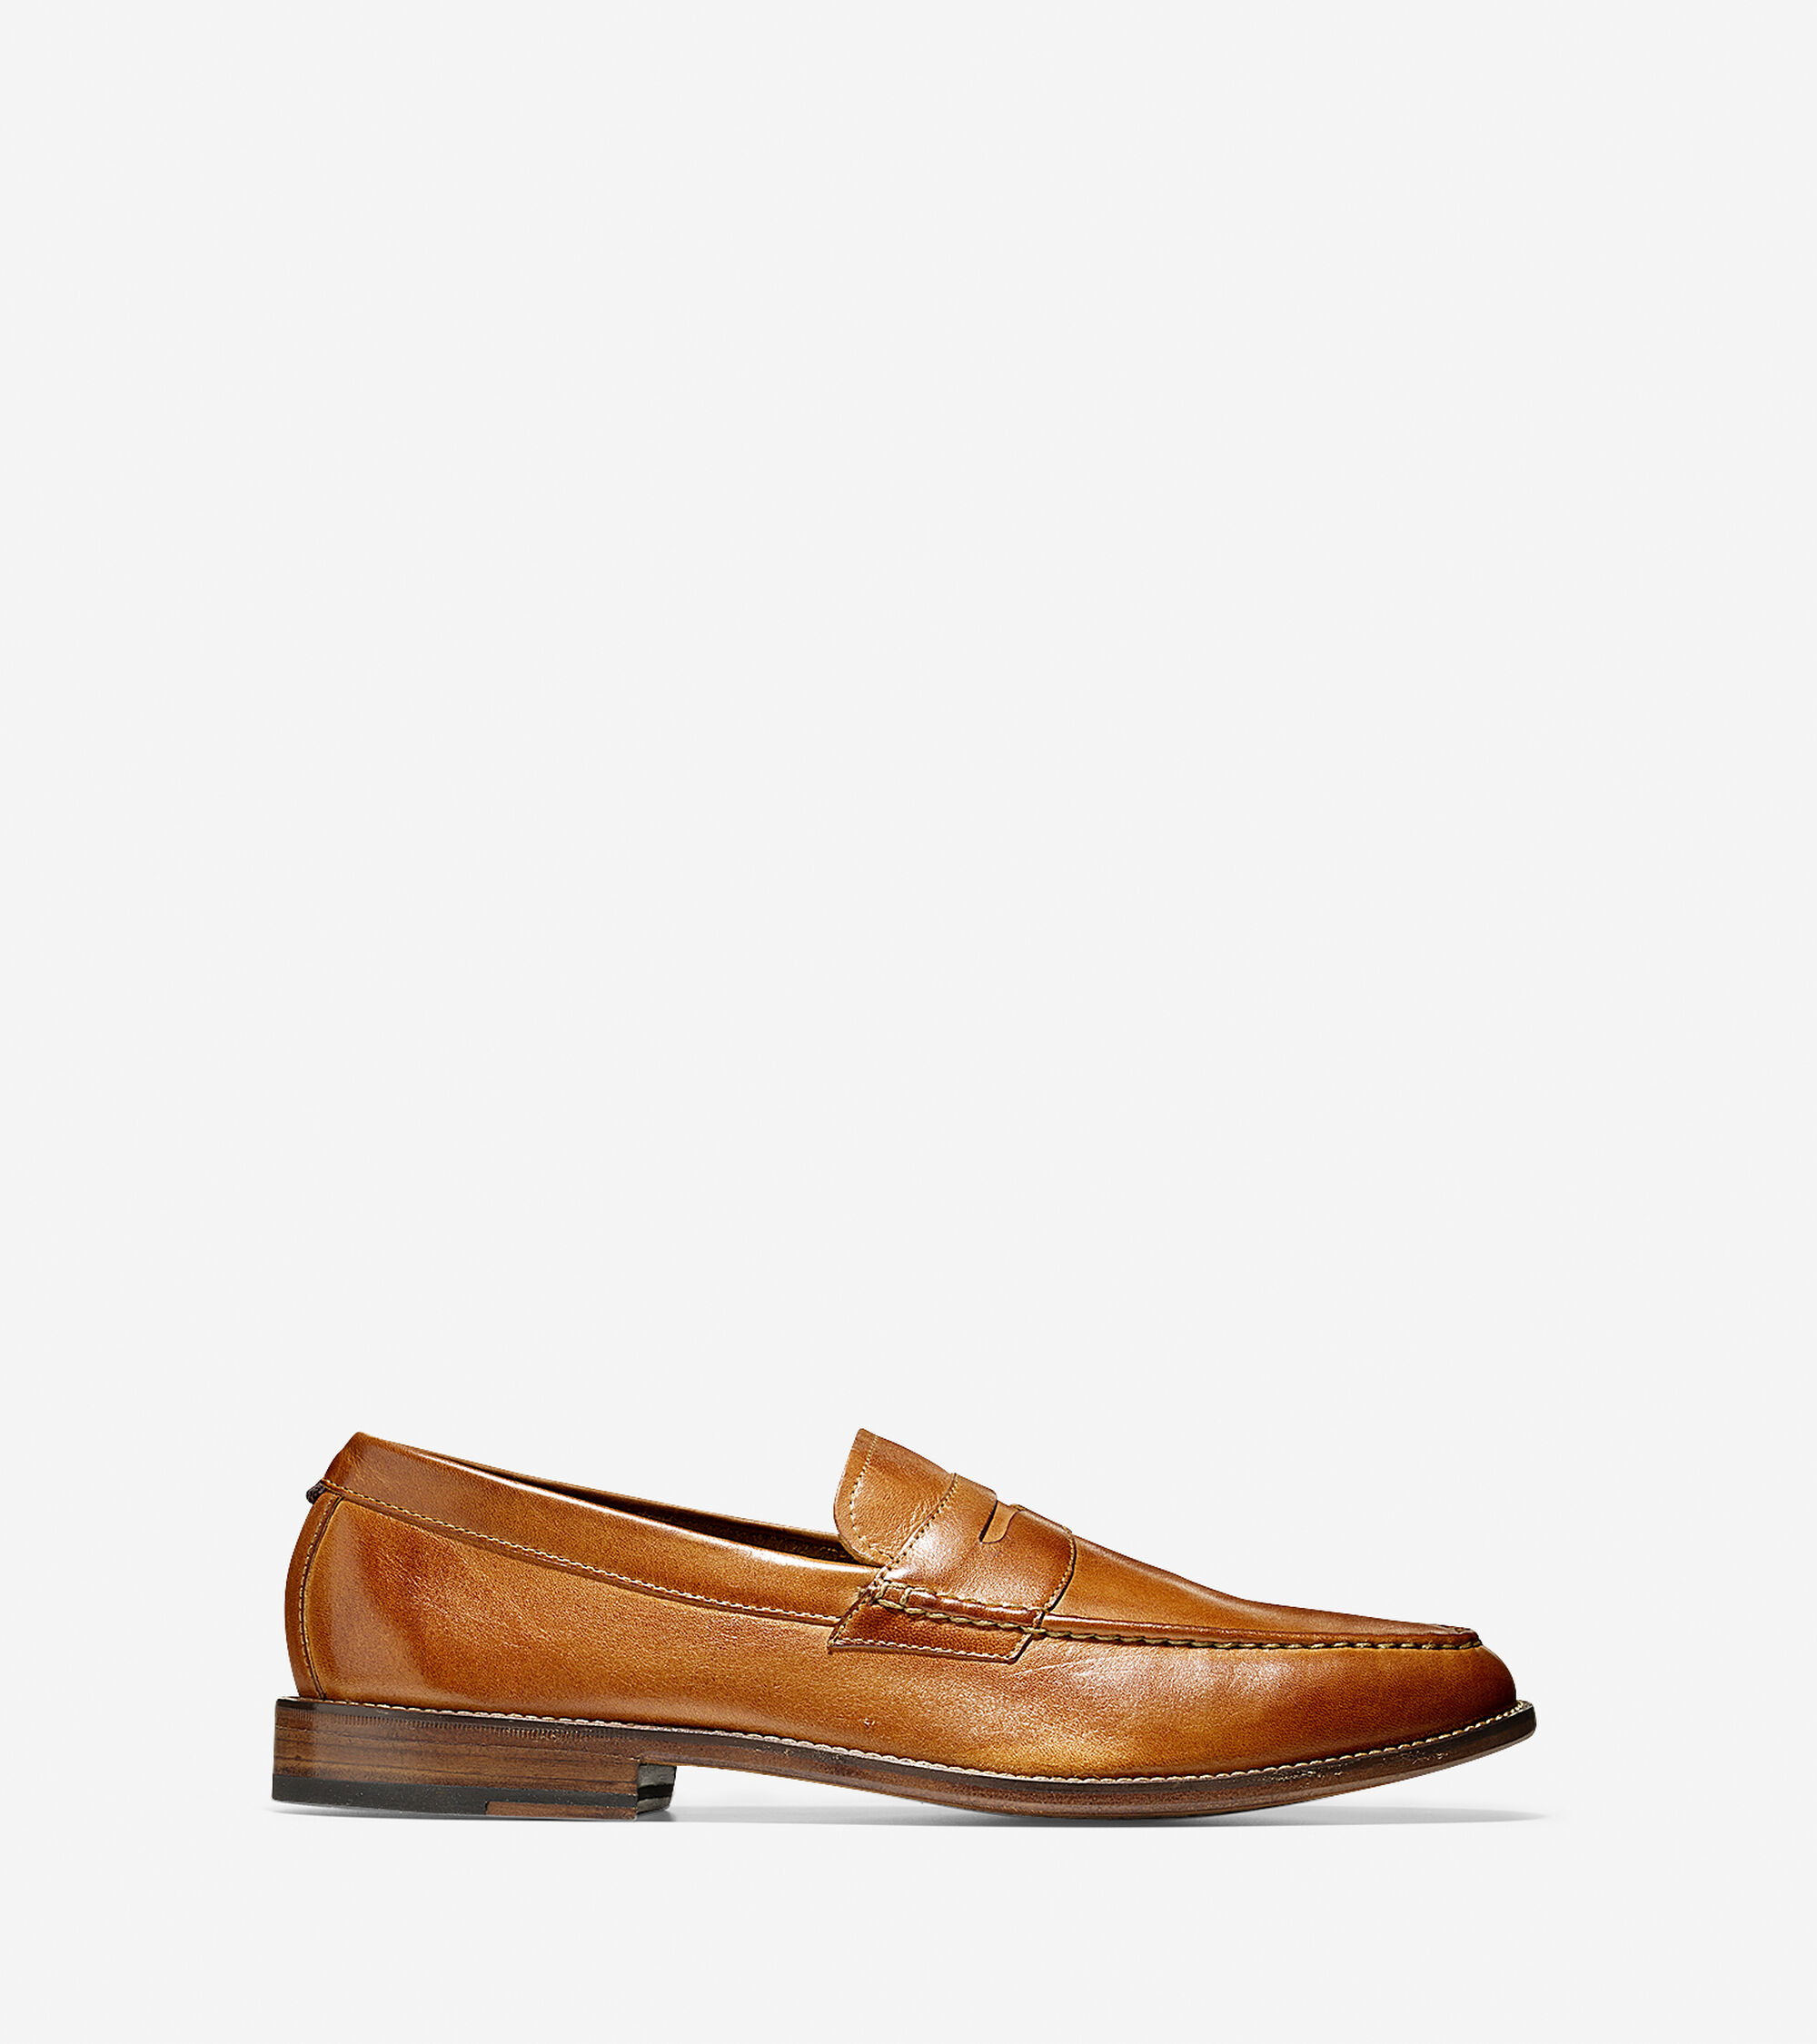 811efe57461 Willet Penny Loafers in British Tan   Mens Shoes